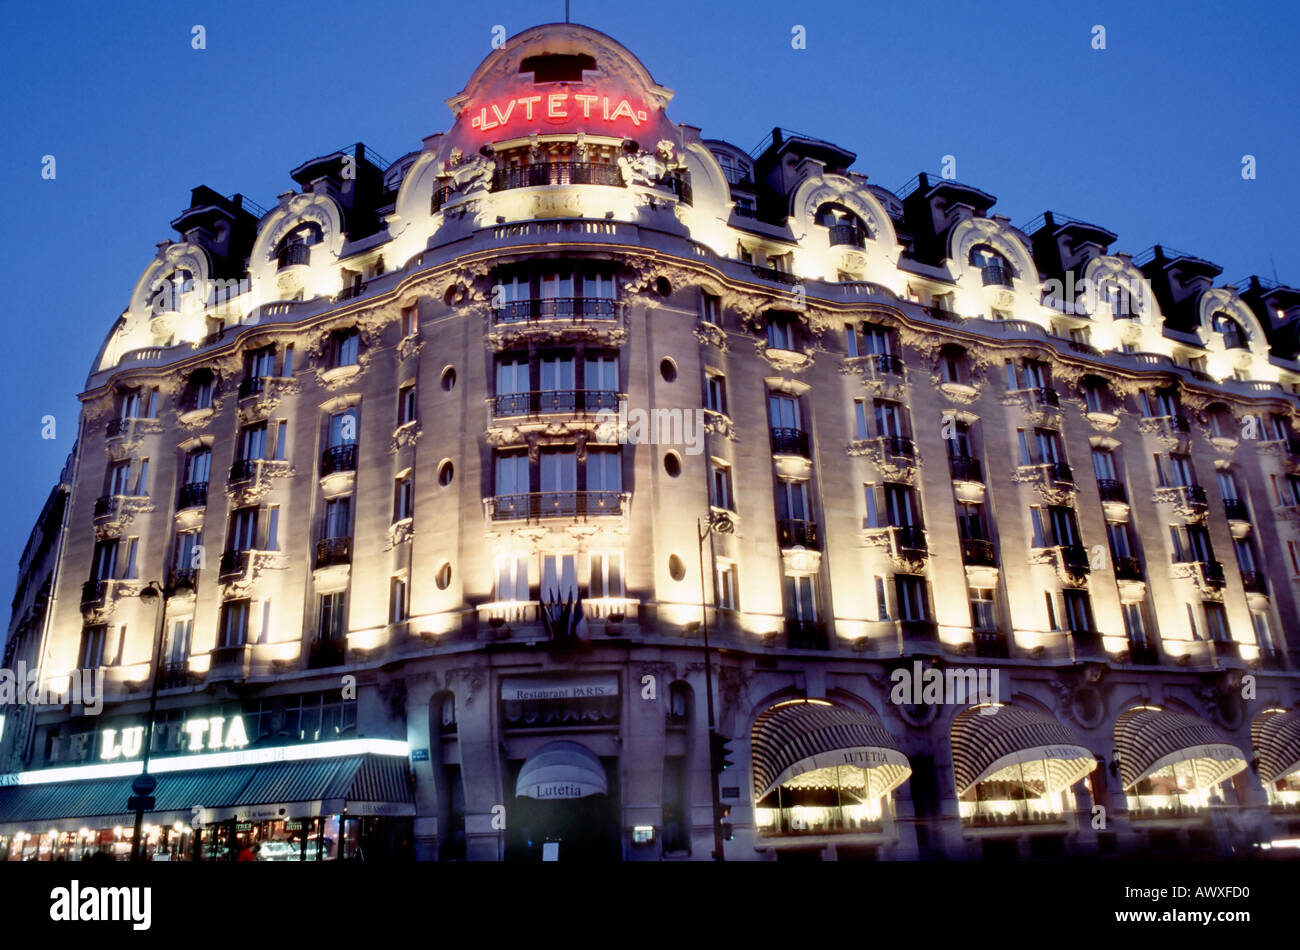 Paris, France, French Luxury Hotel Lutetia, Palace, 'Art Nouveau Style' Exterior Lit Up at Night Façade - Stock Image